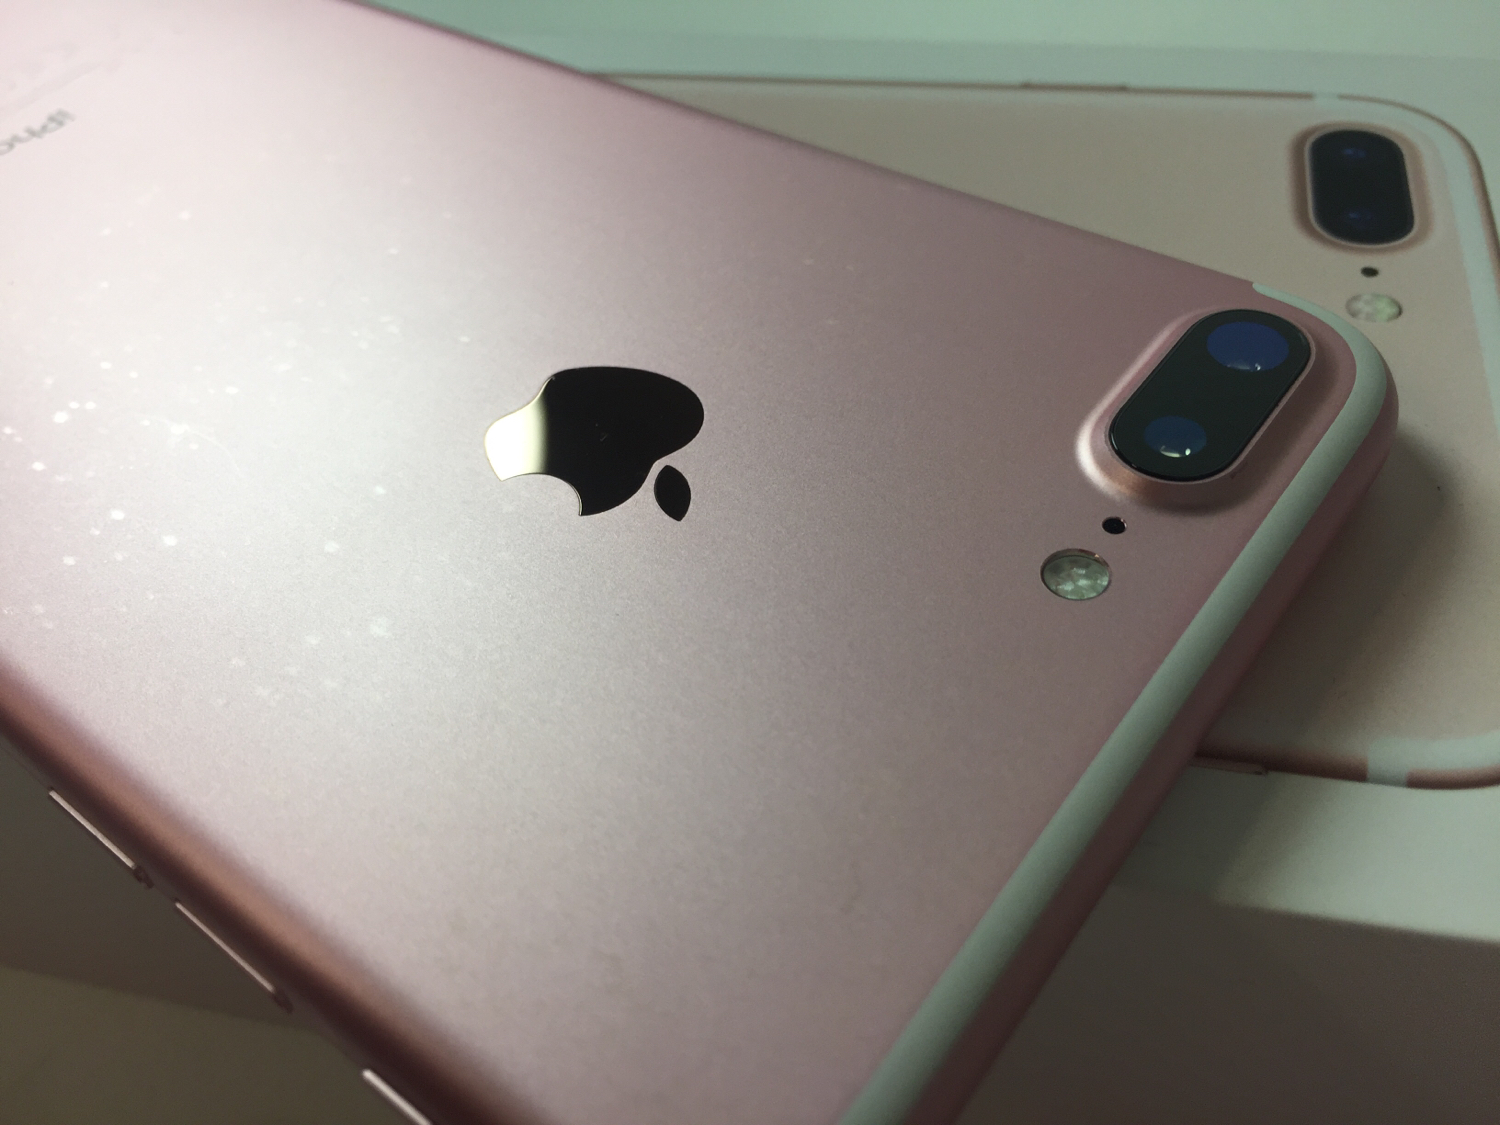 iPhone 7 Plus 128GB, 128GB, Rose Gold, obraz 6